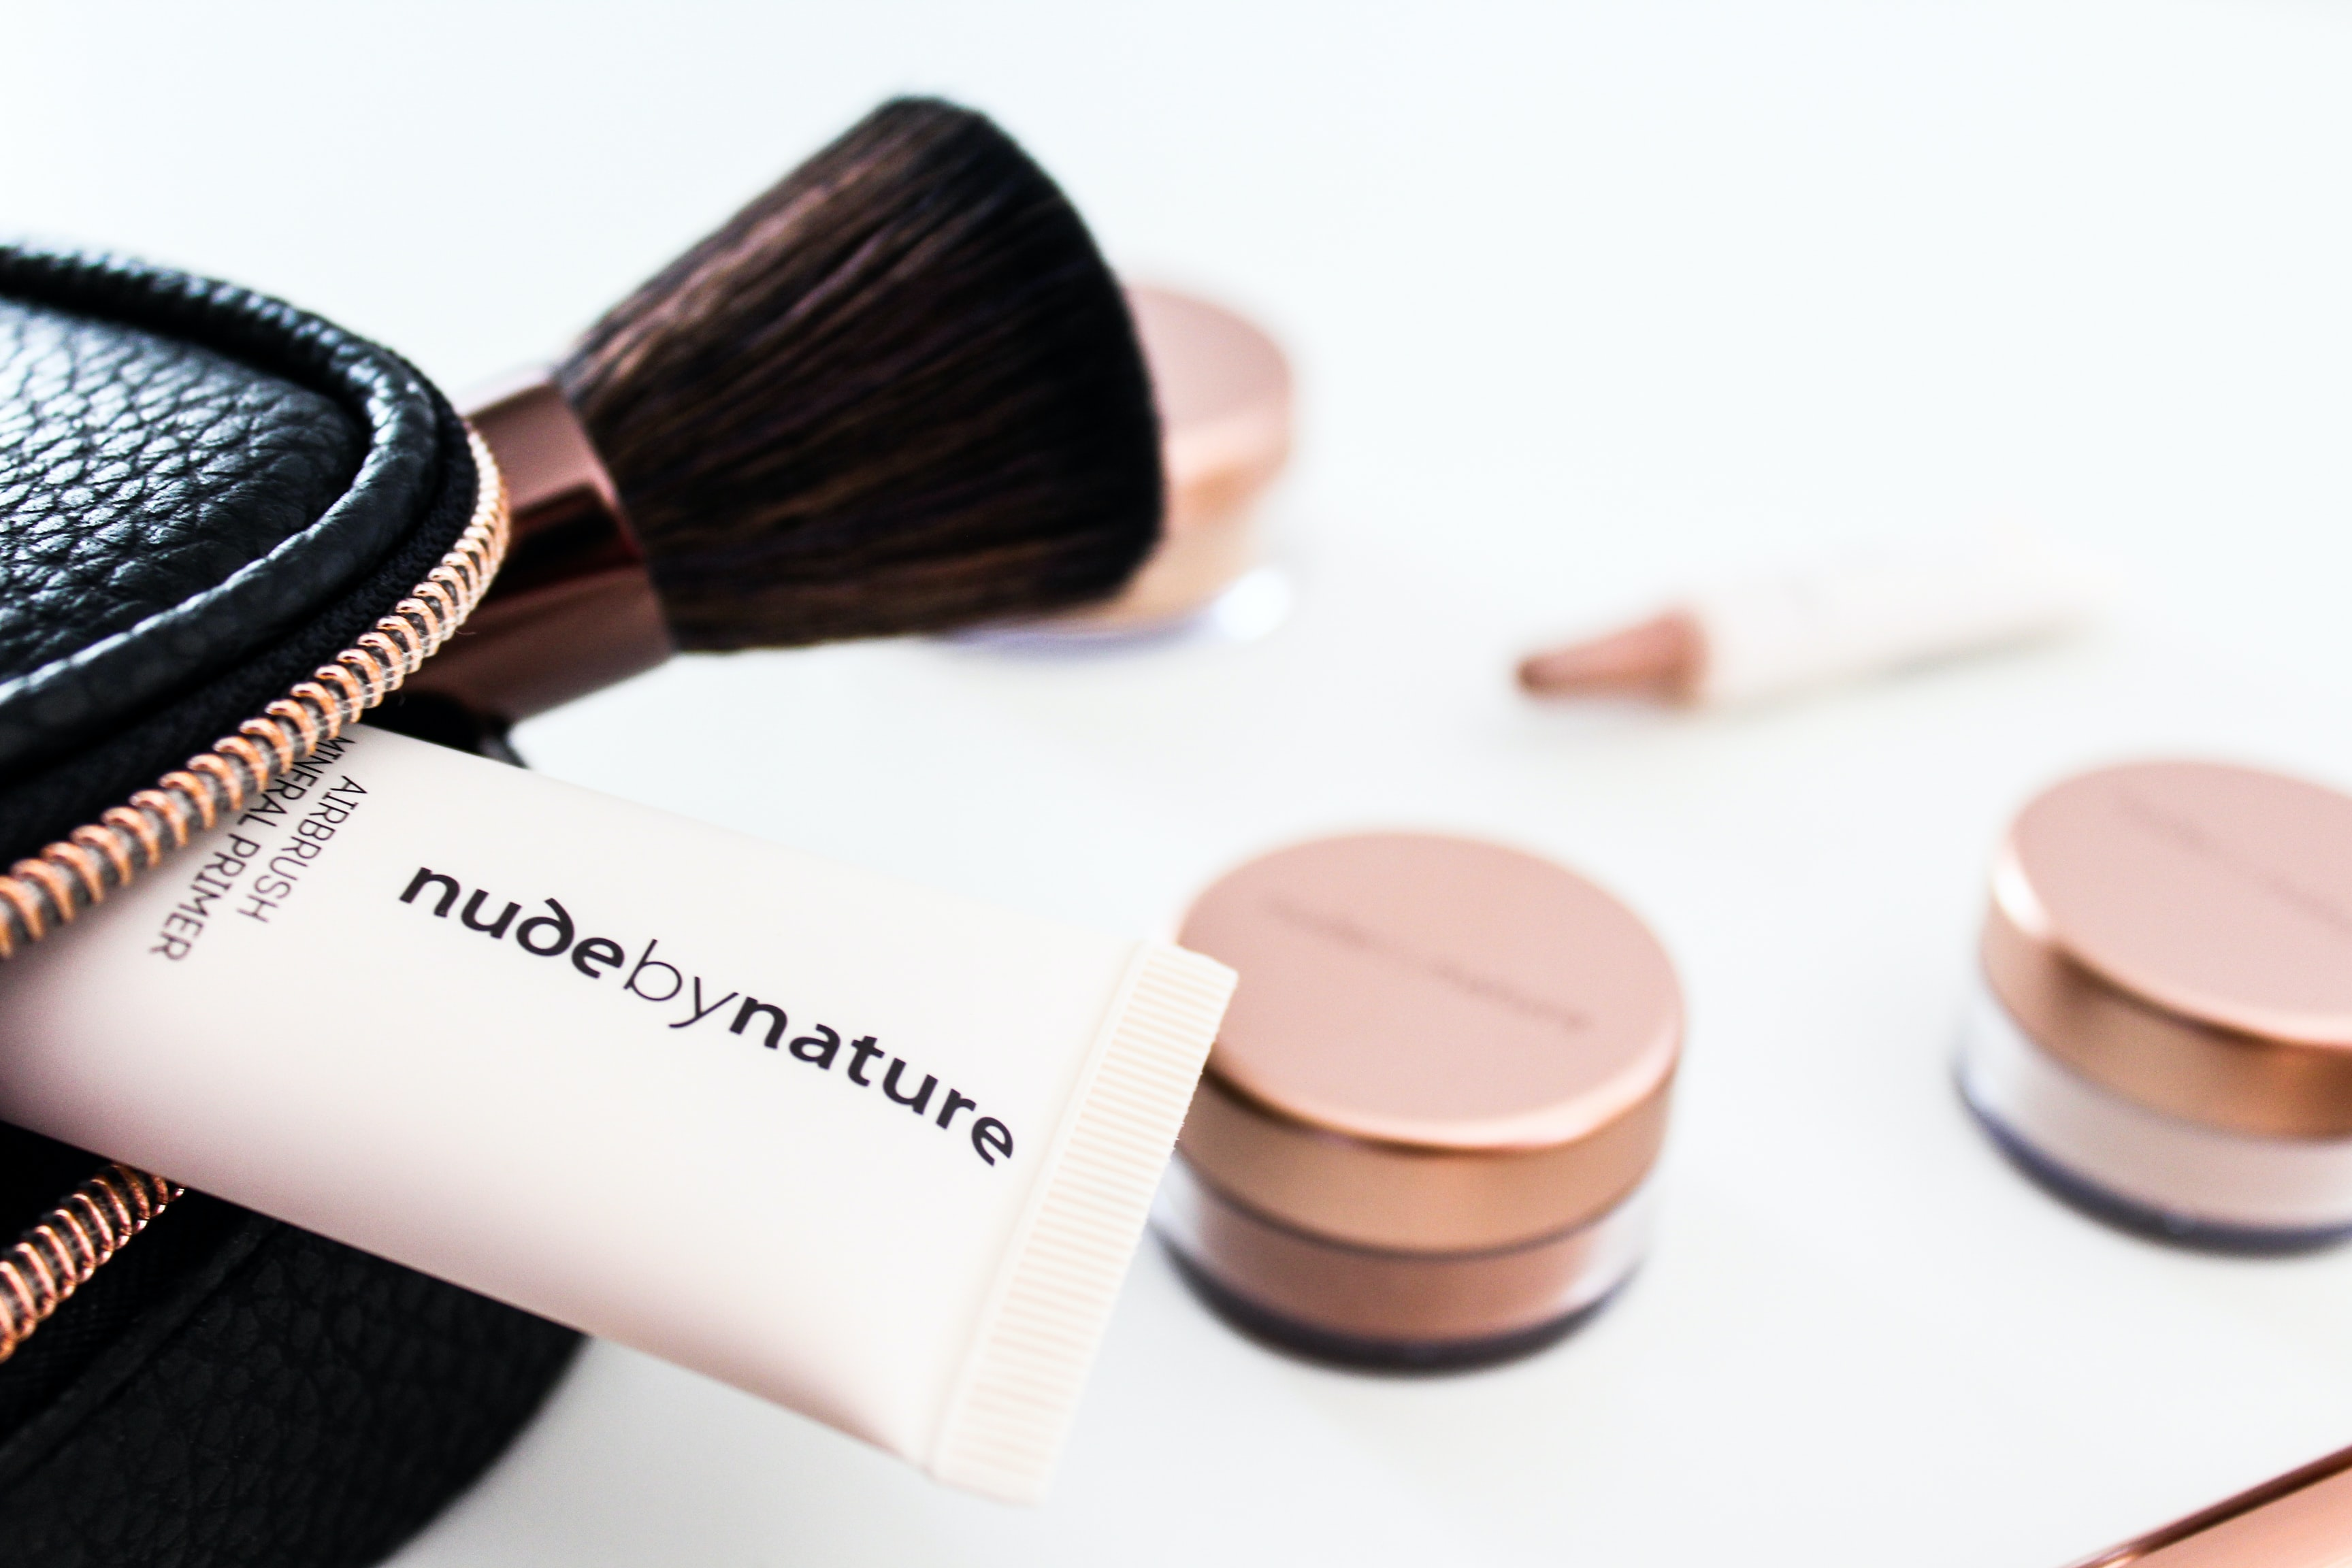 Nude by Nature soft-tube beside brown makeup brush